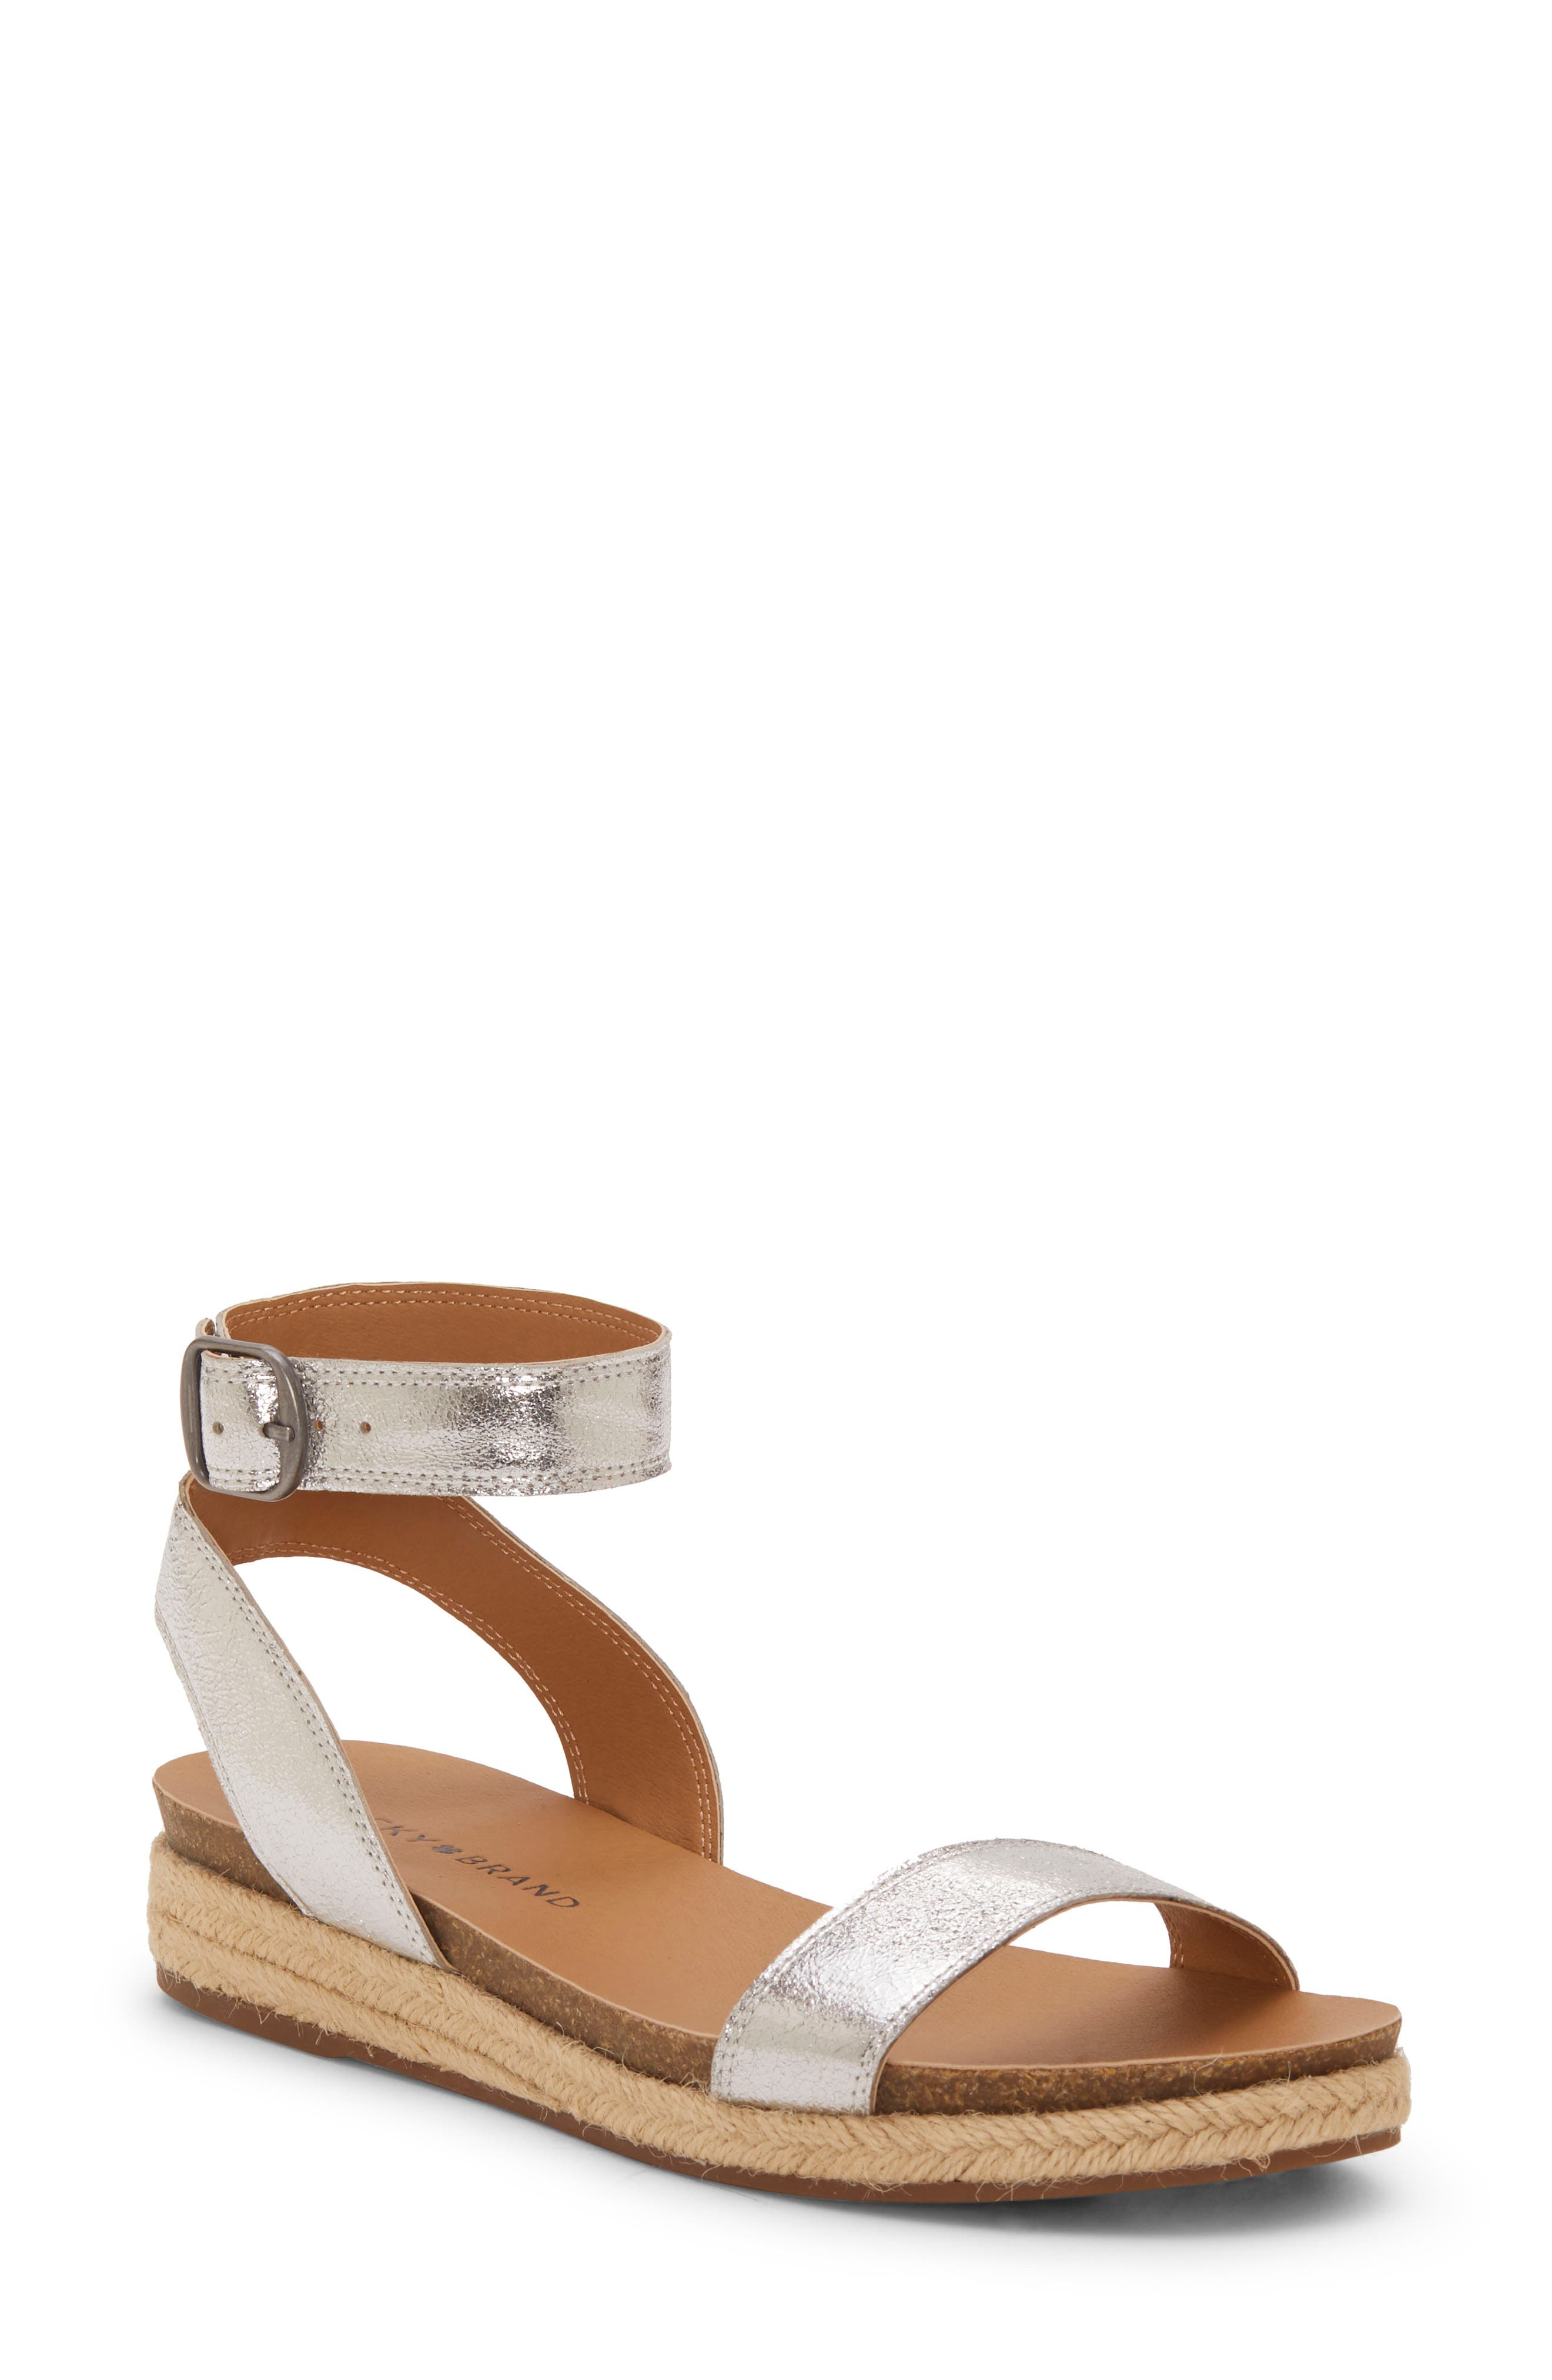 LUCKY BRAND,                             Garston Espadrille Sandal,                             Main thumbnail 1, color,                             SILVER LEATHER